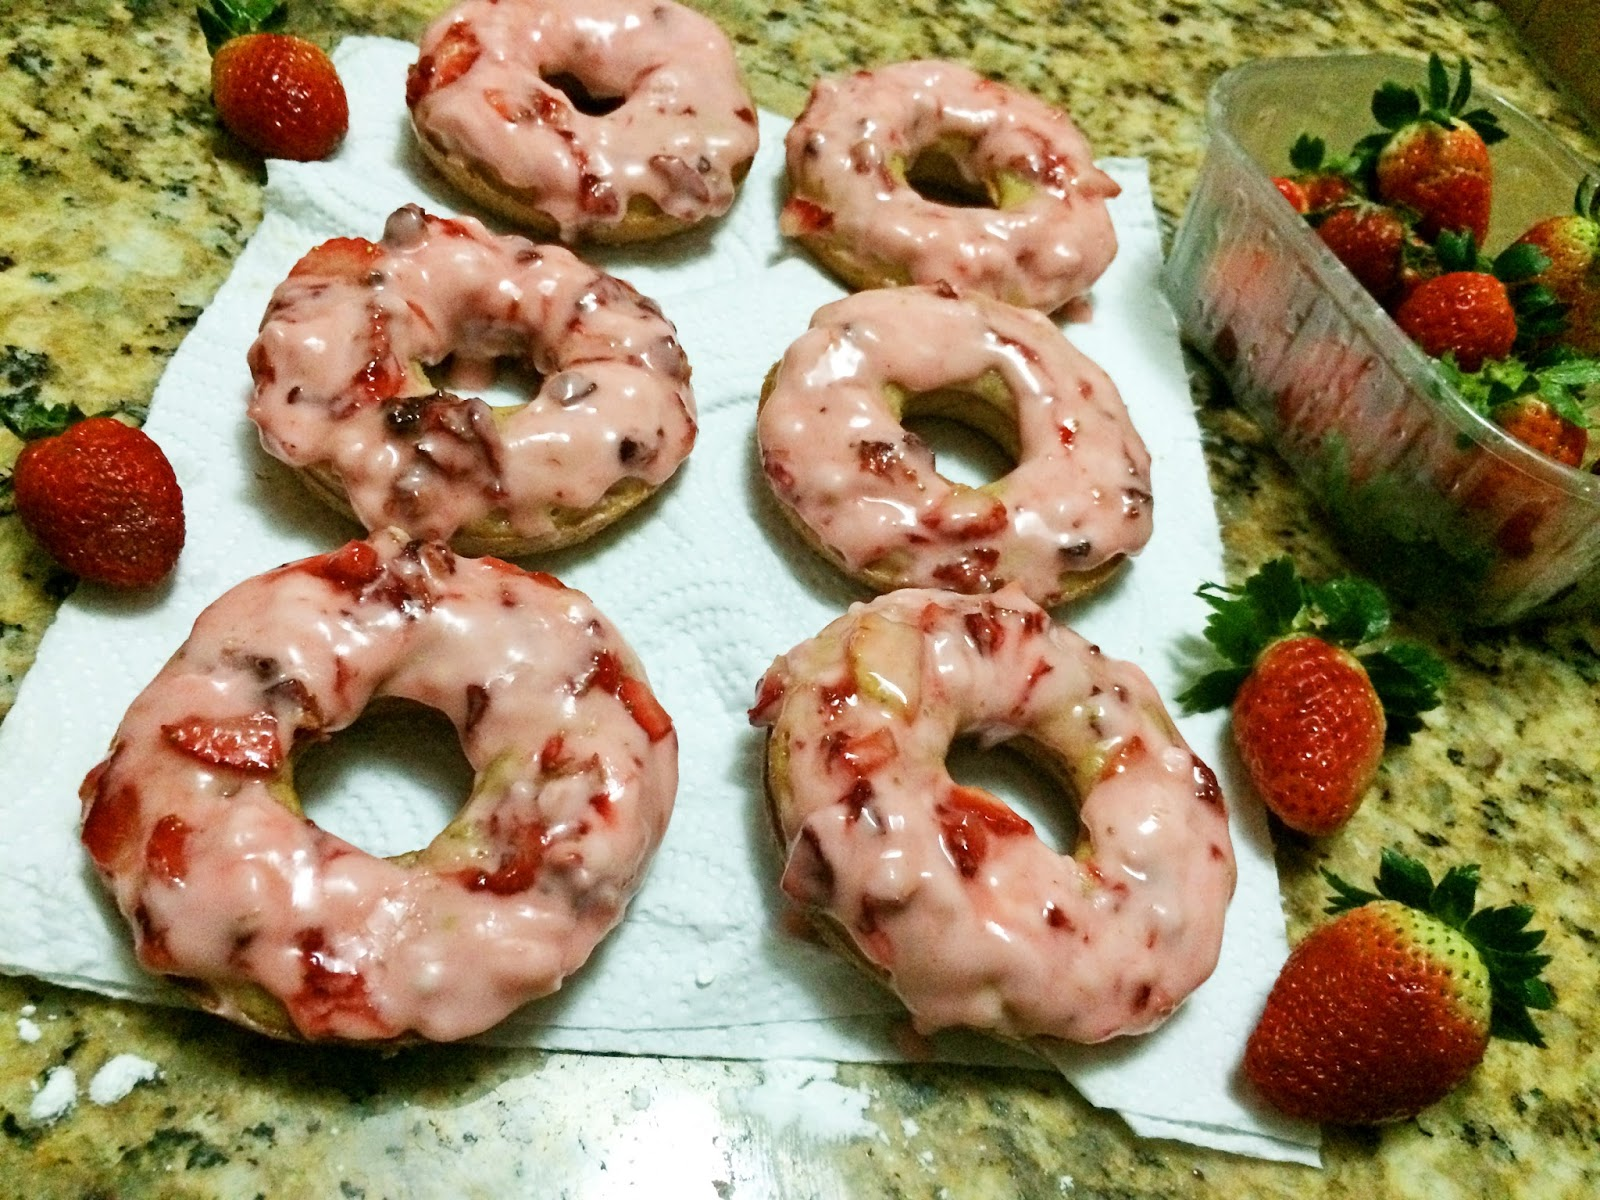 Homemade Strawberry Doughnuts